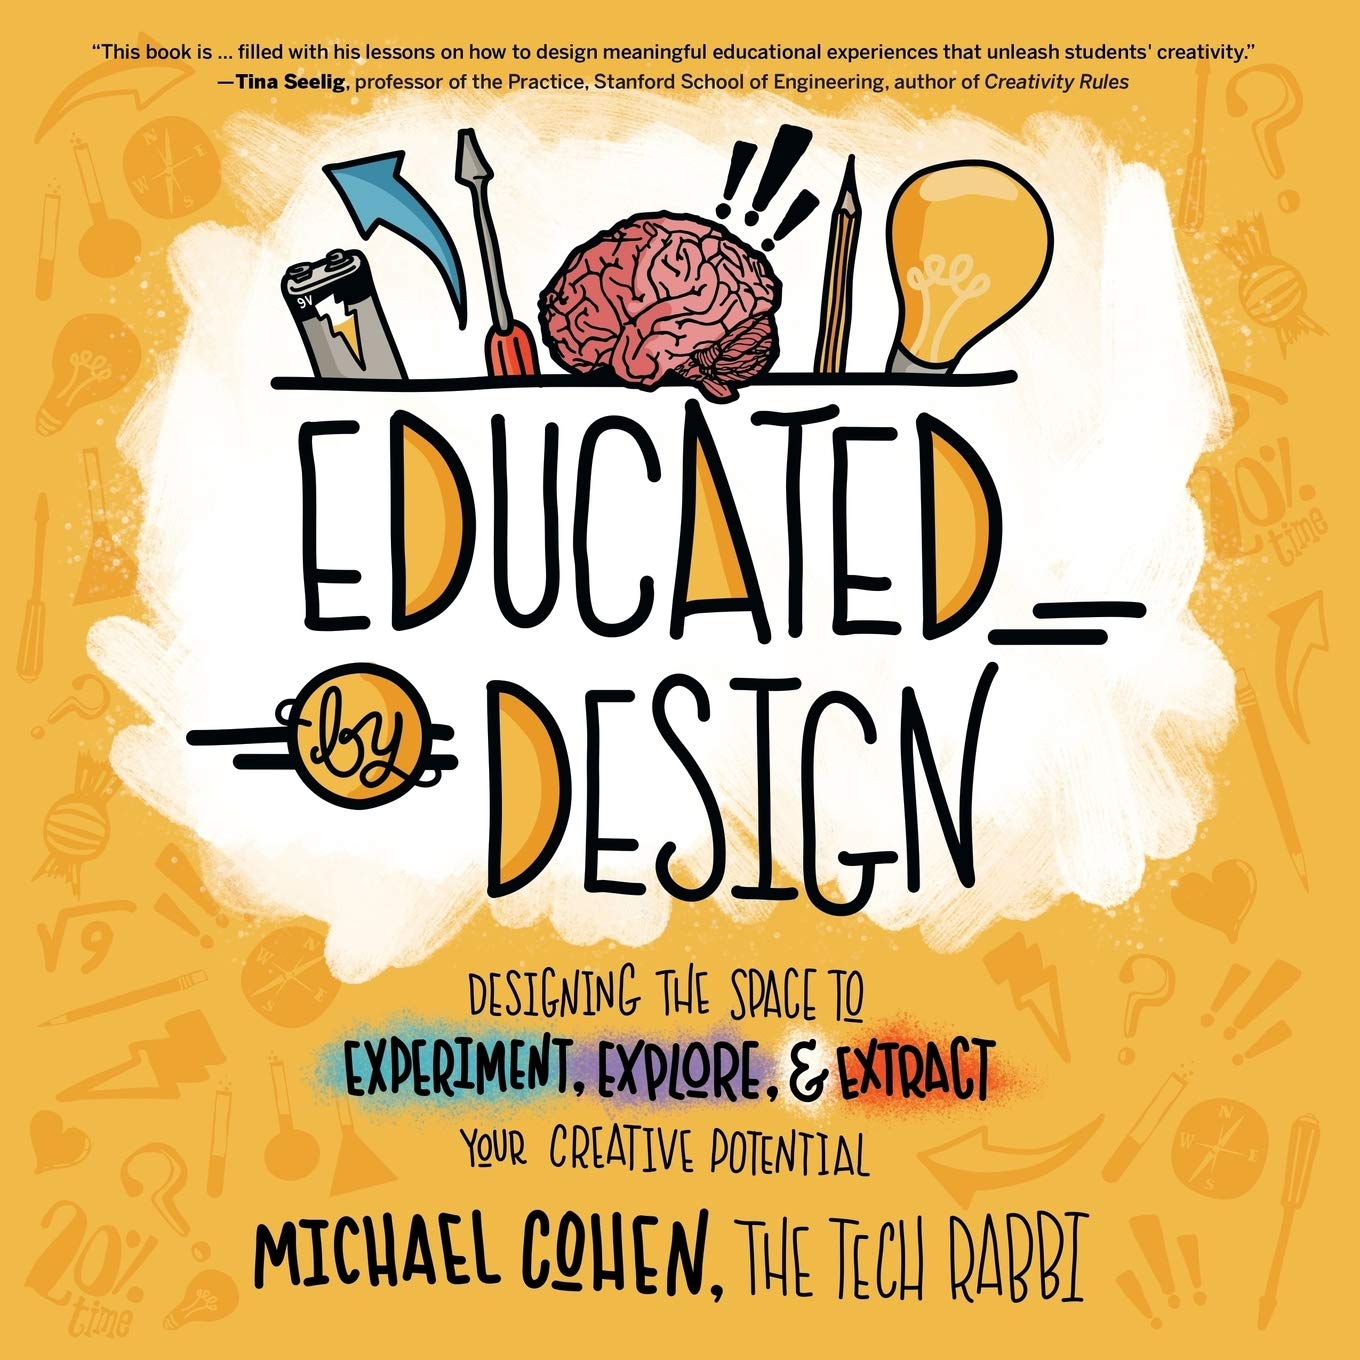 Amazon Com Educated By Design Designing The Space To Experiment Explore And Extract Your Creative Potential 9781949595109 Cohen Michael Books